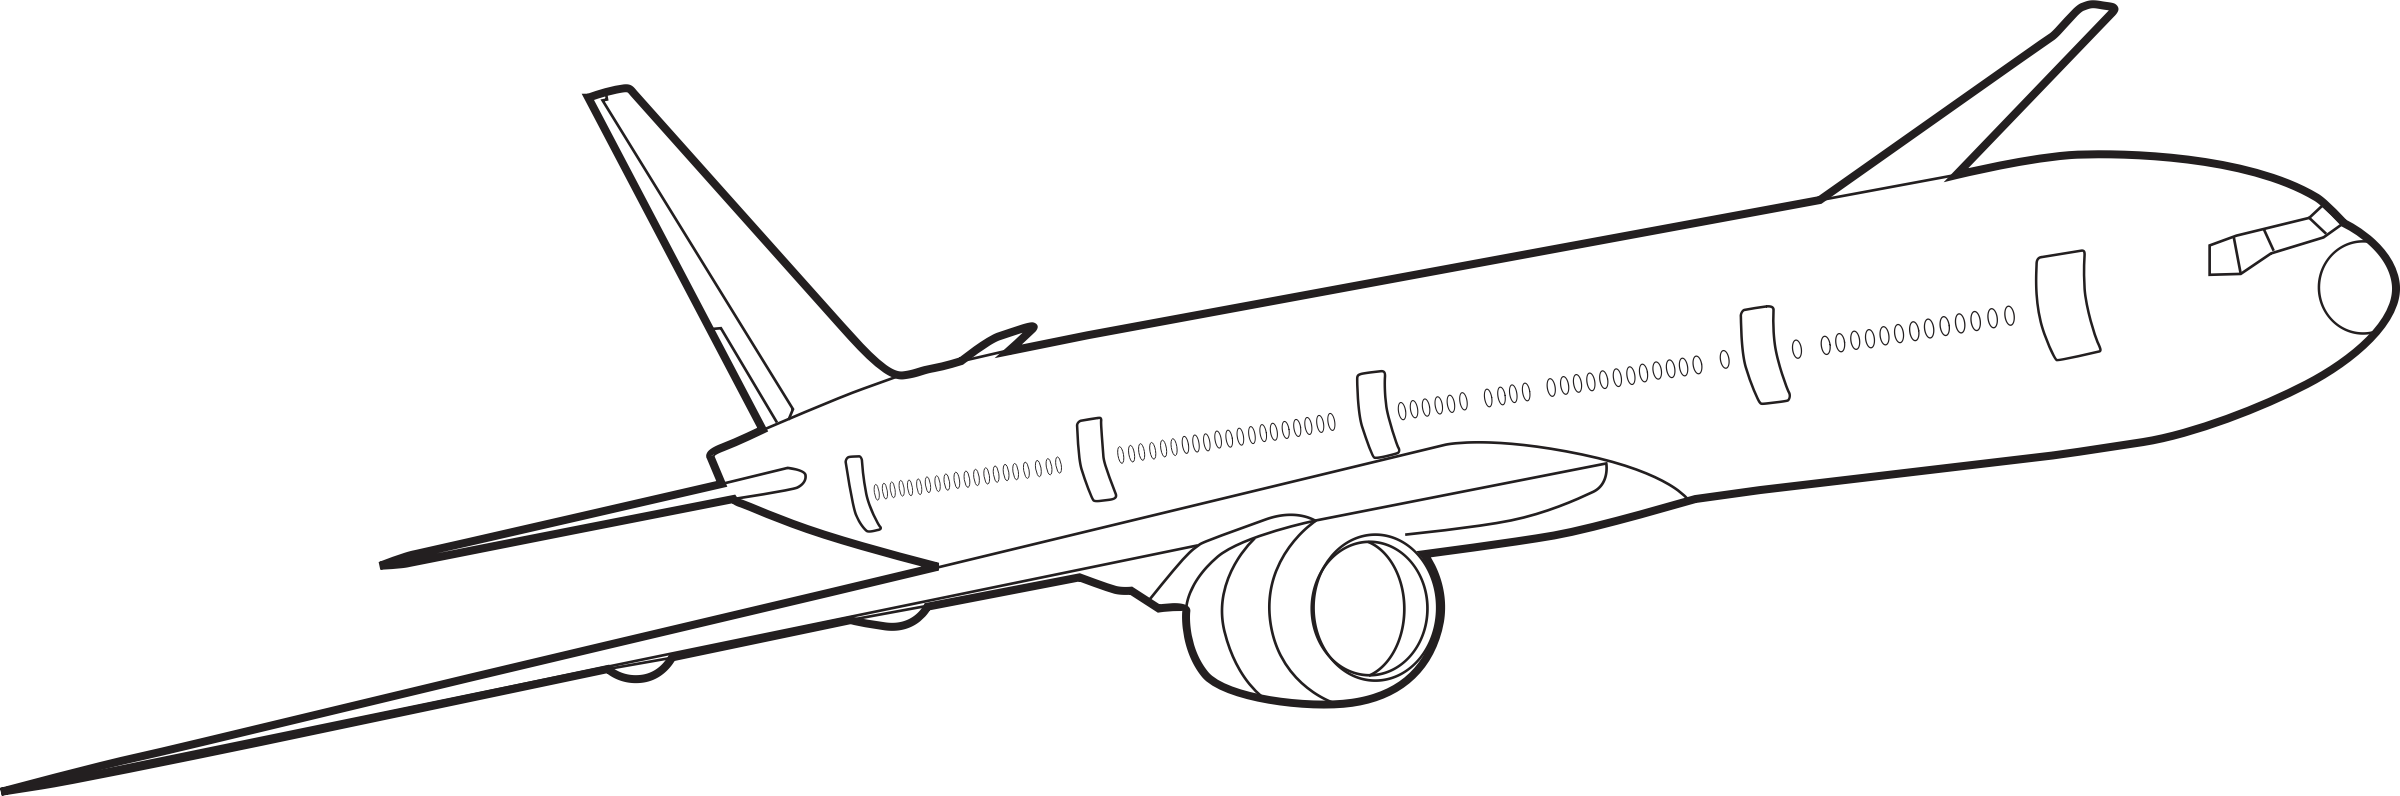 Drawing airplane. Plane outline at getdrawings